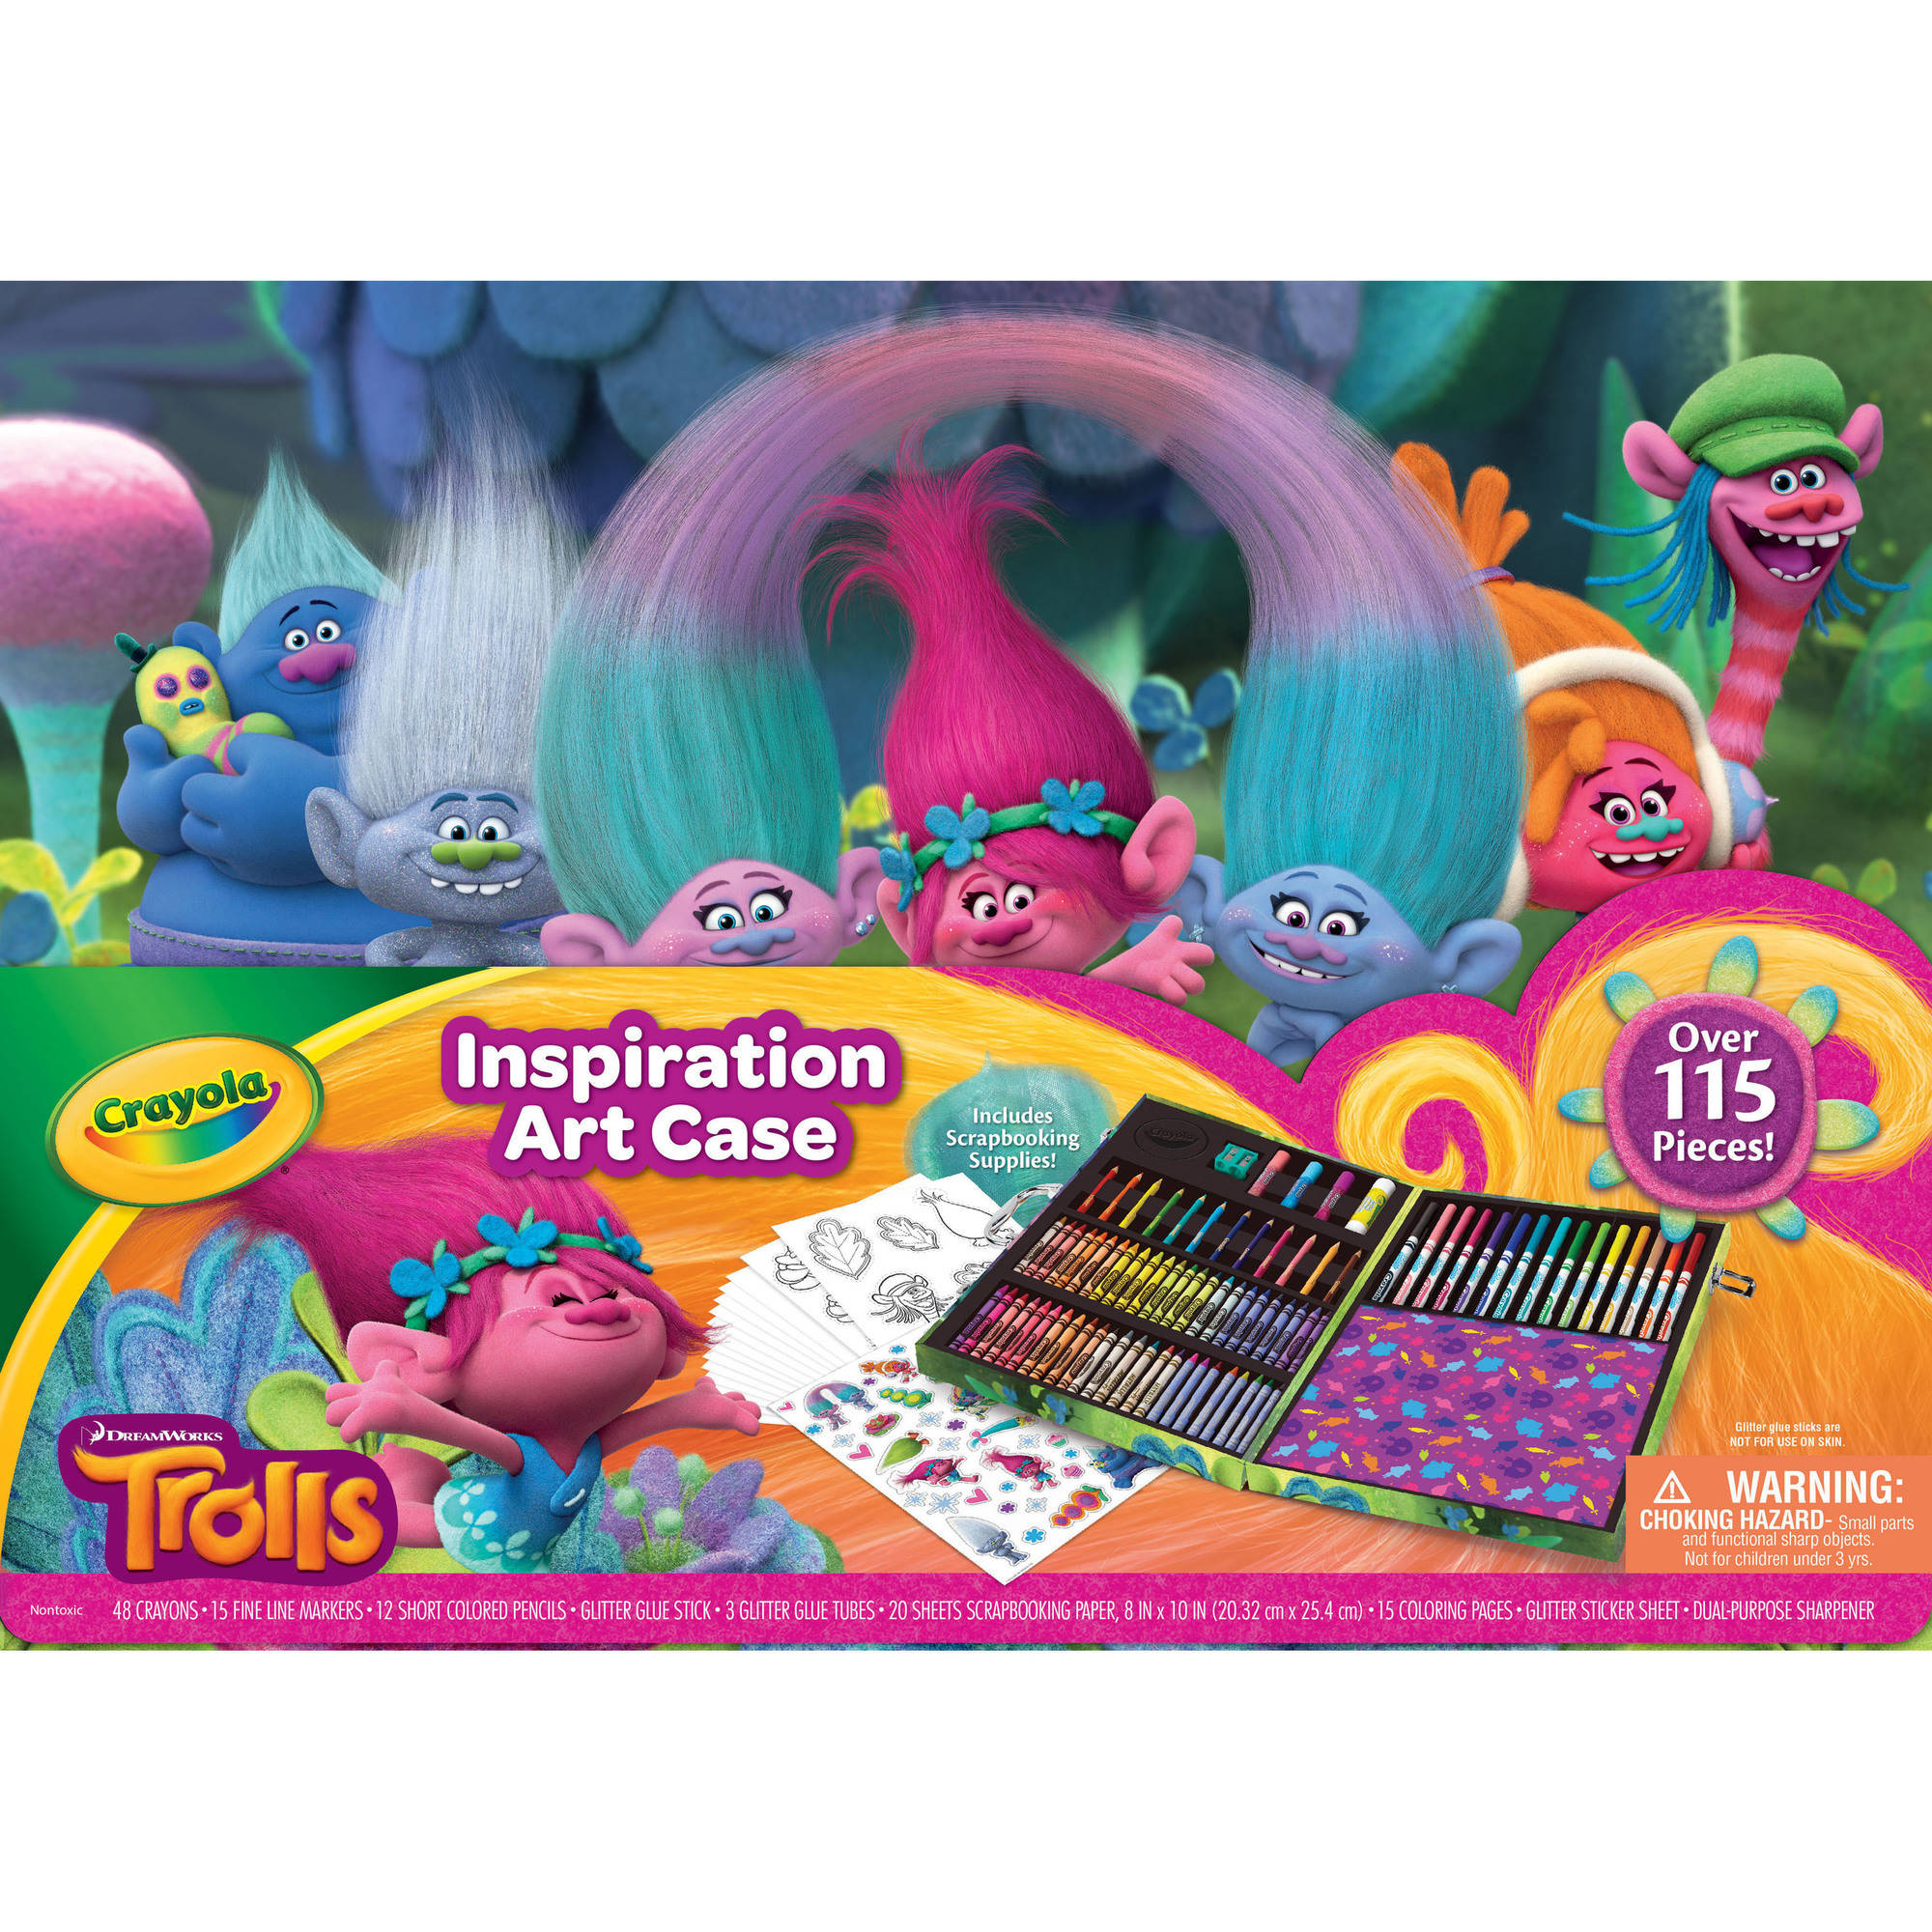 Crayola's Disney Trolls Glitter Scrapbooking Set, Includes 64 Crayons, 20 Supertips Markers, Glue Stick, Coloring Pages, Great as Gift